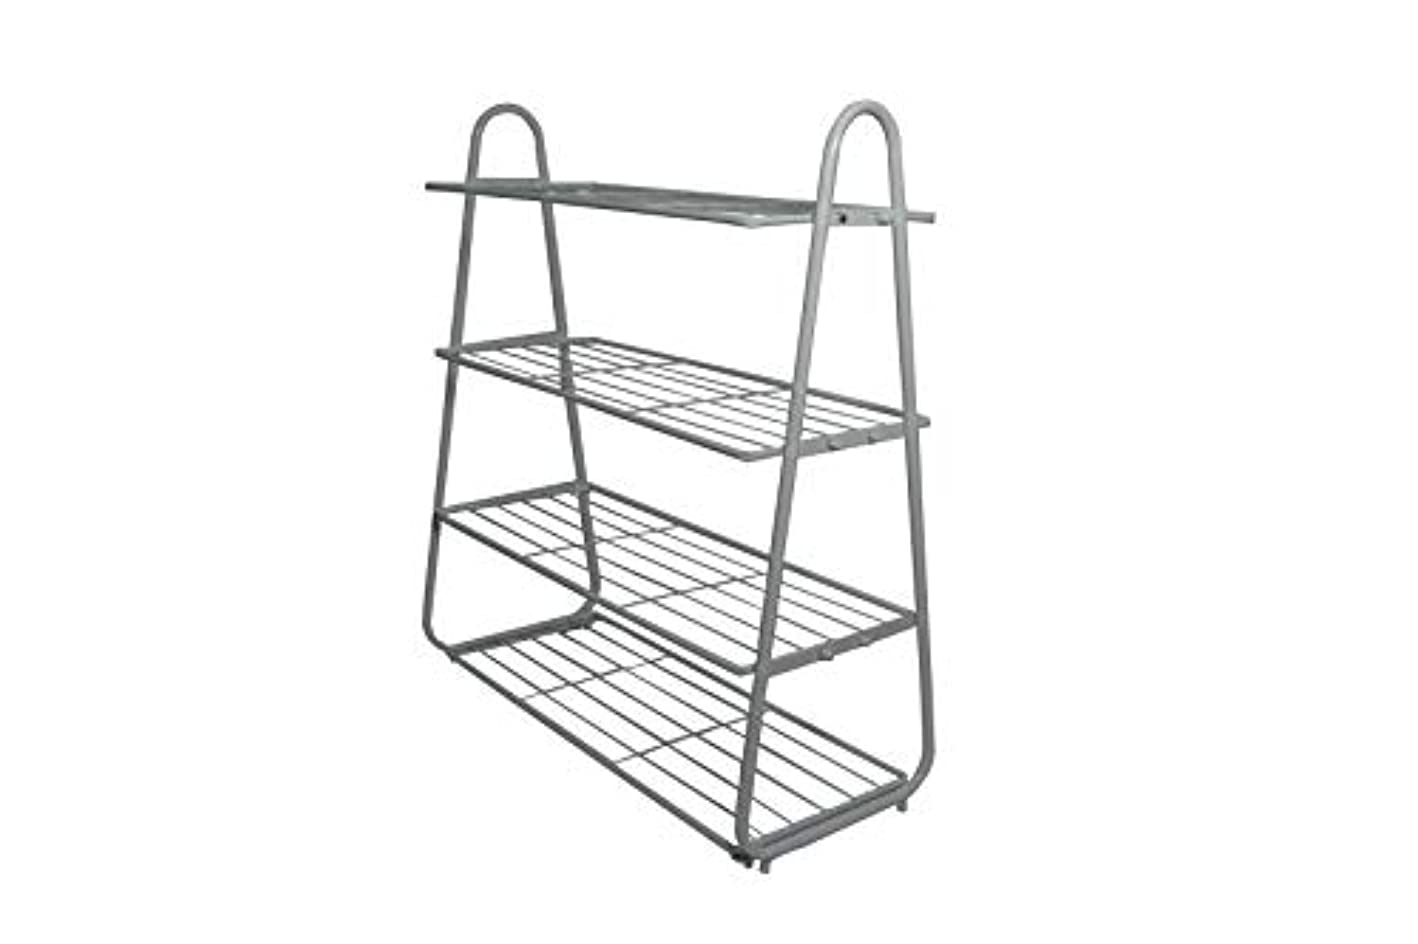 AXDT 4-Tier Shoe Rack Organizer Metal Shoes Storage Bench, Iron Shoes Shelf Cabinet for Entryway, Closet, Living Room, Bedroom